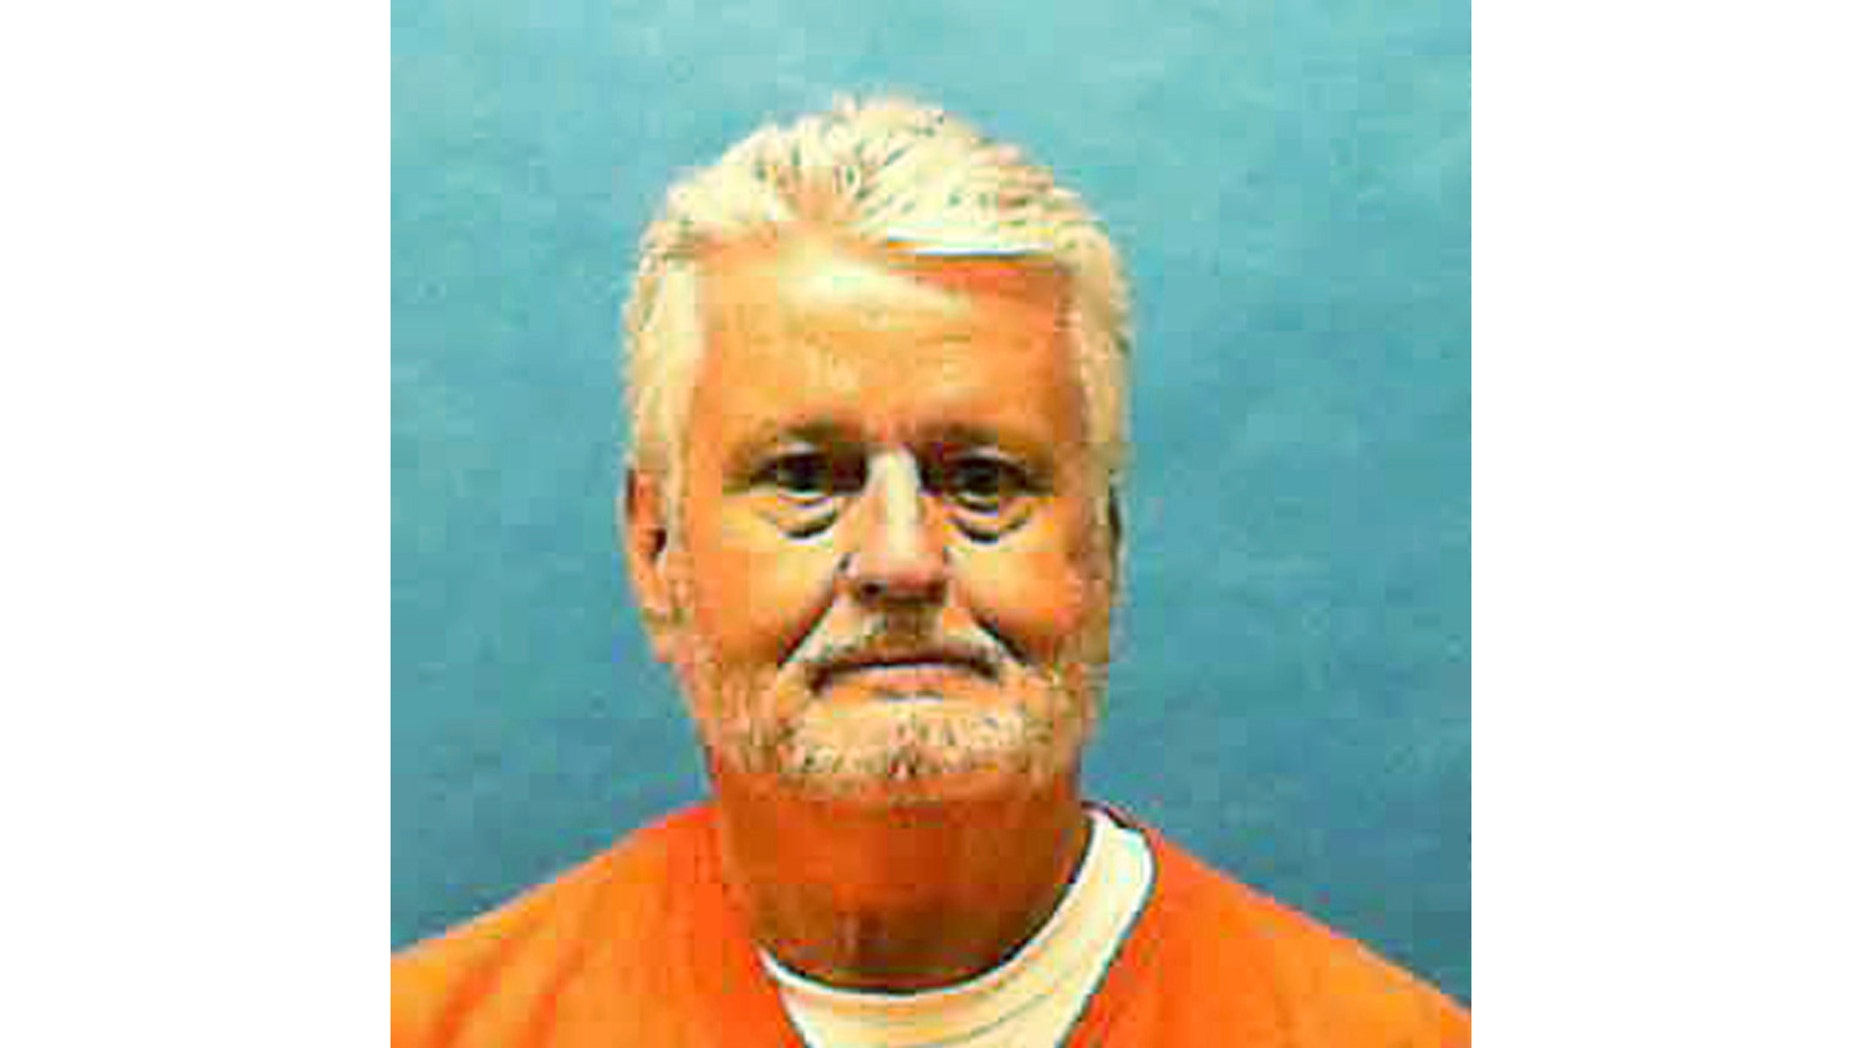 Man who killed 10 women in Florida is executed